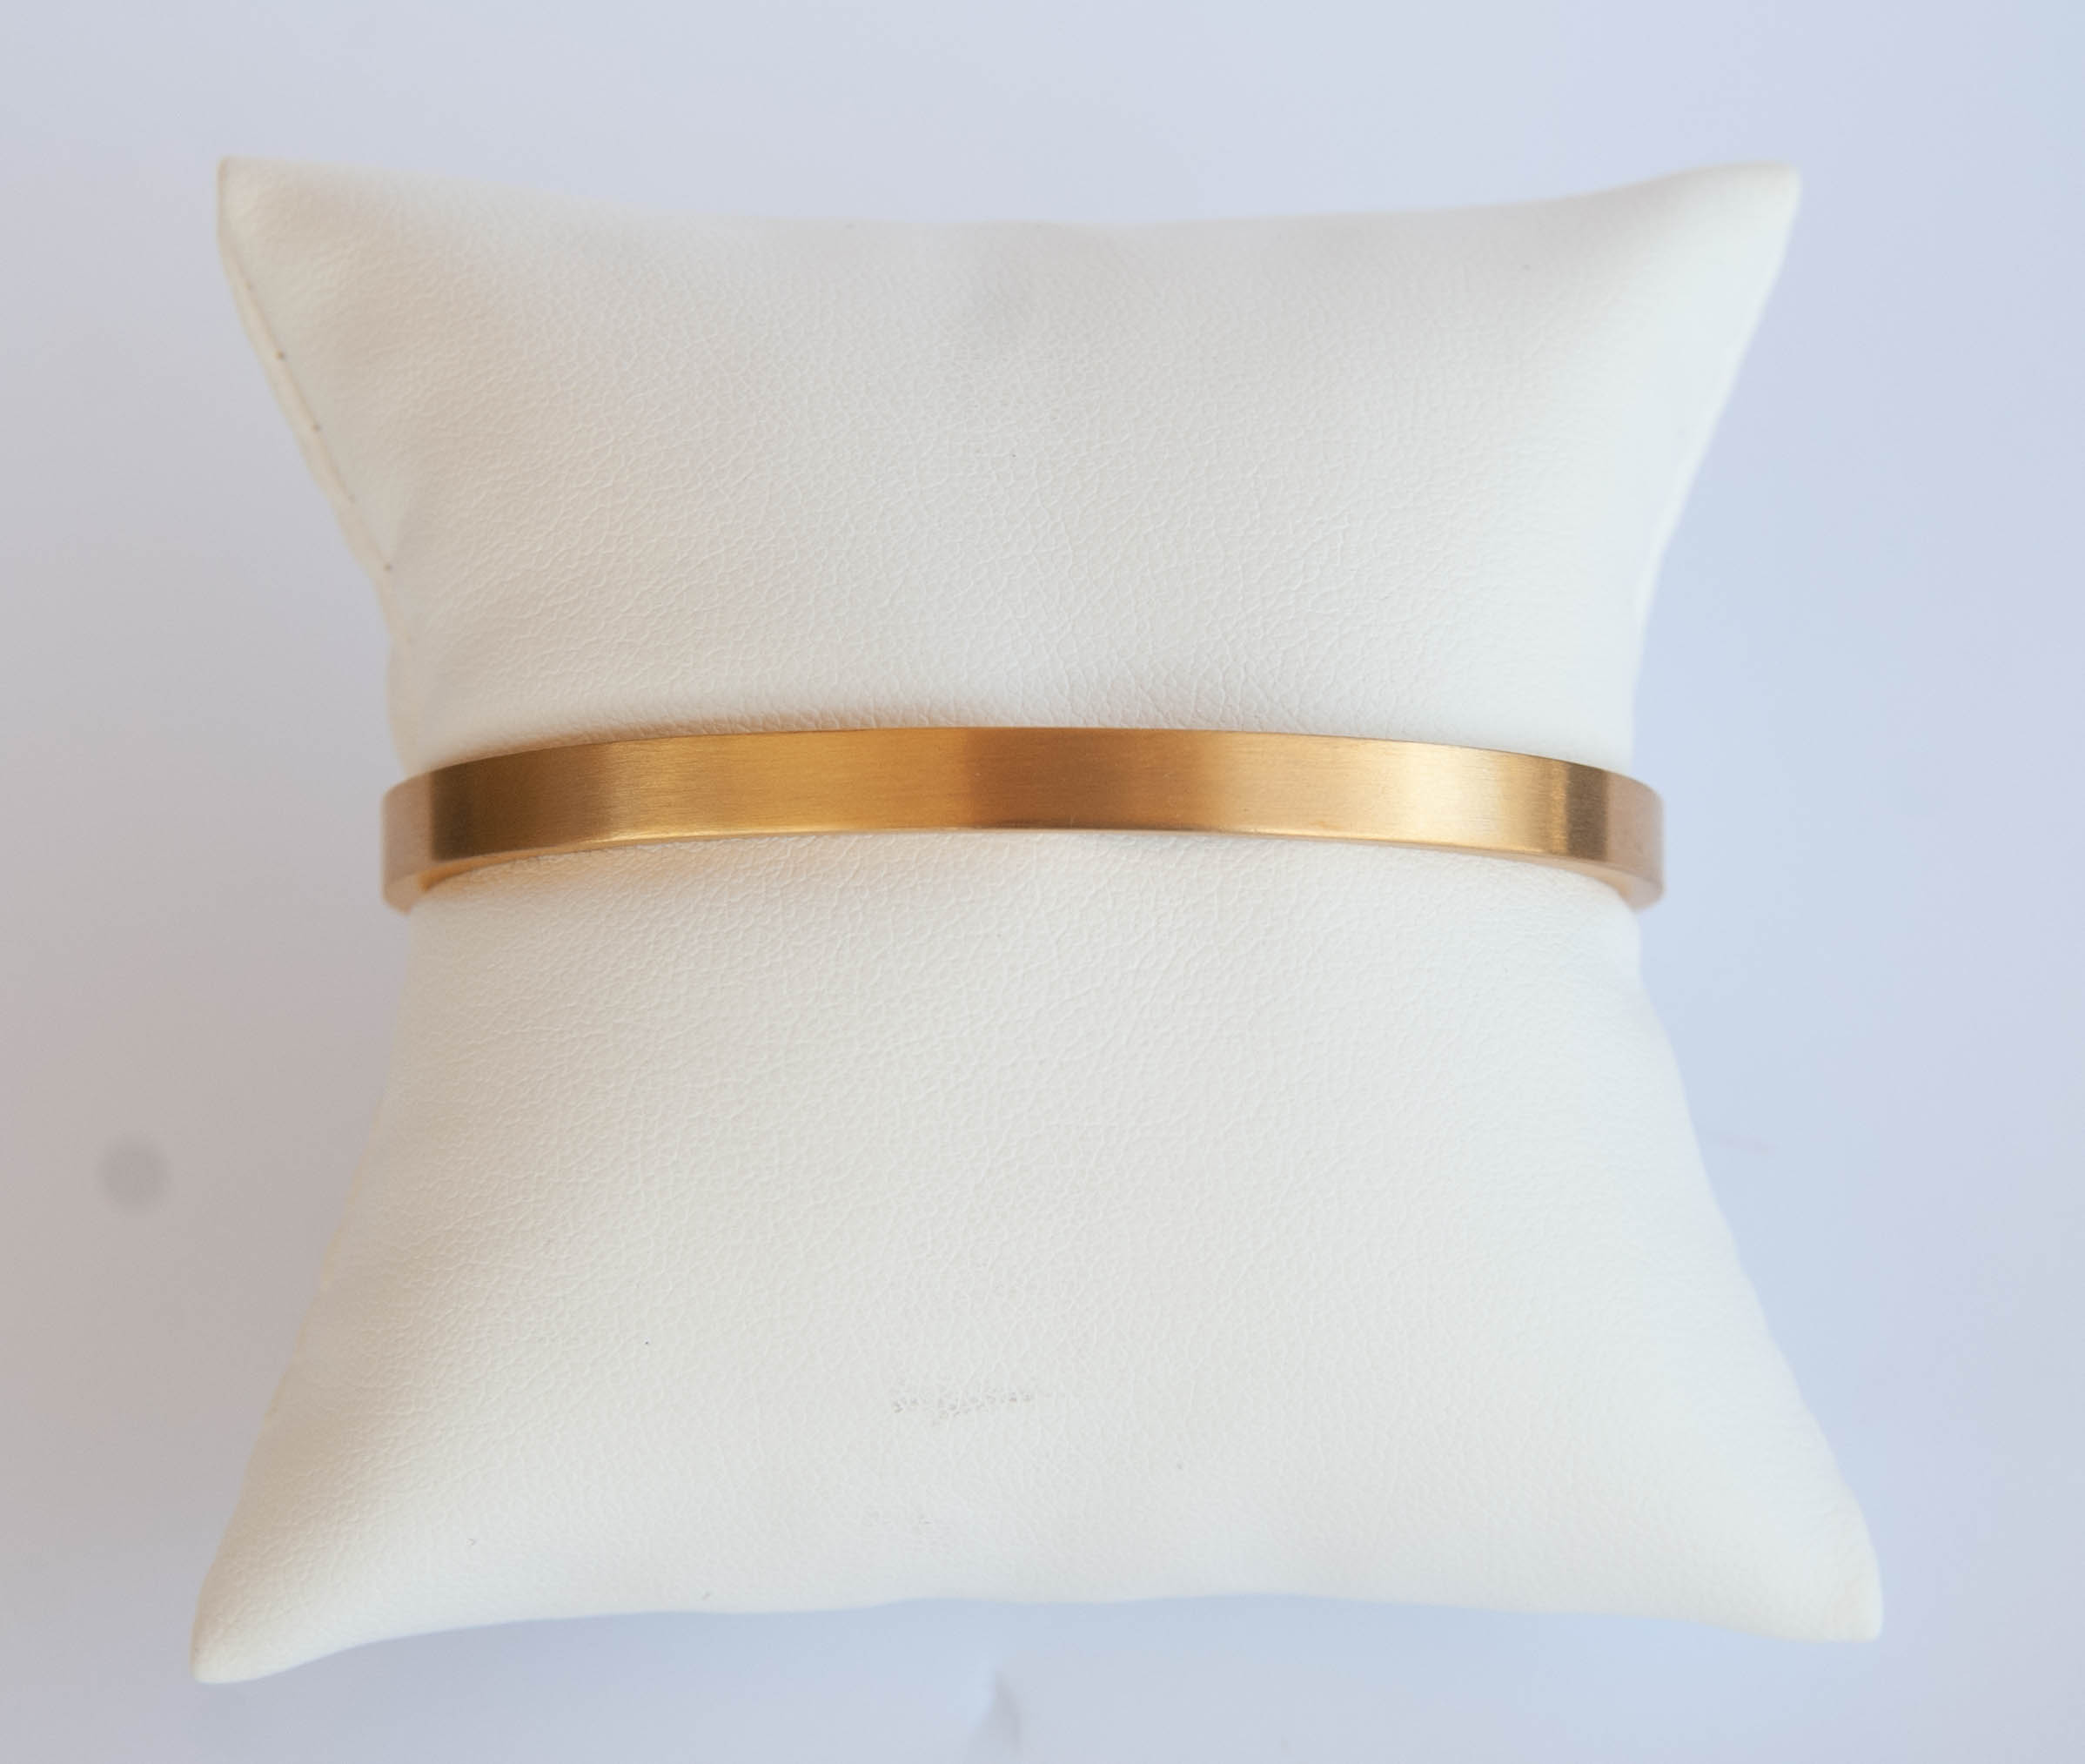 750-4   Stainless Steel Gold Finish Hinged Bangle $45.00